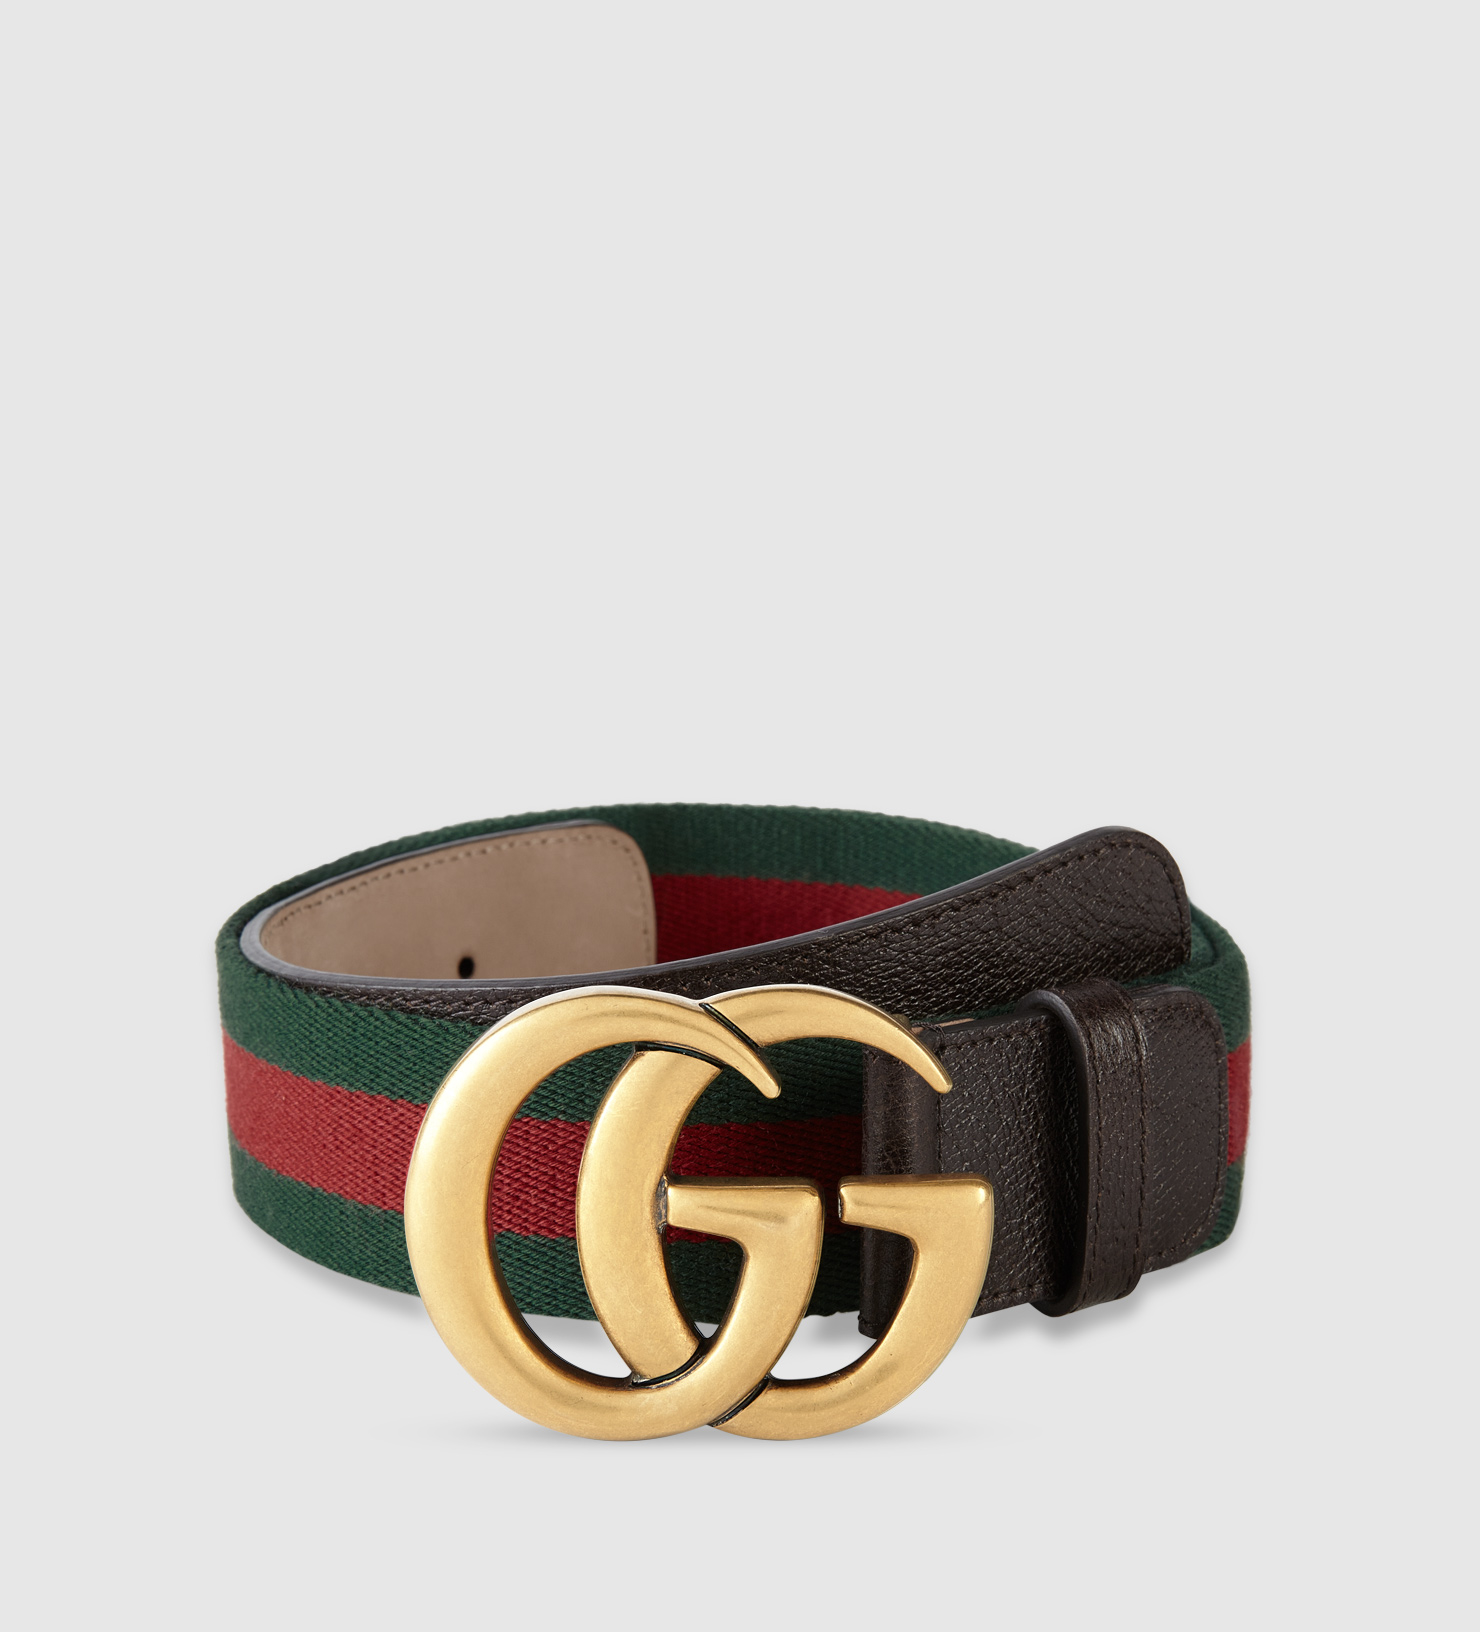 53e1dab53 ... Gucci Blet: Gucci Web Belt With Double G Buckle In Metallic